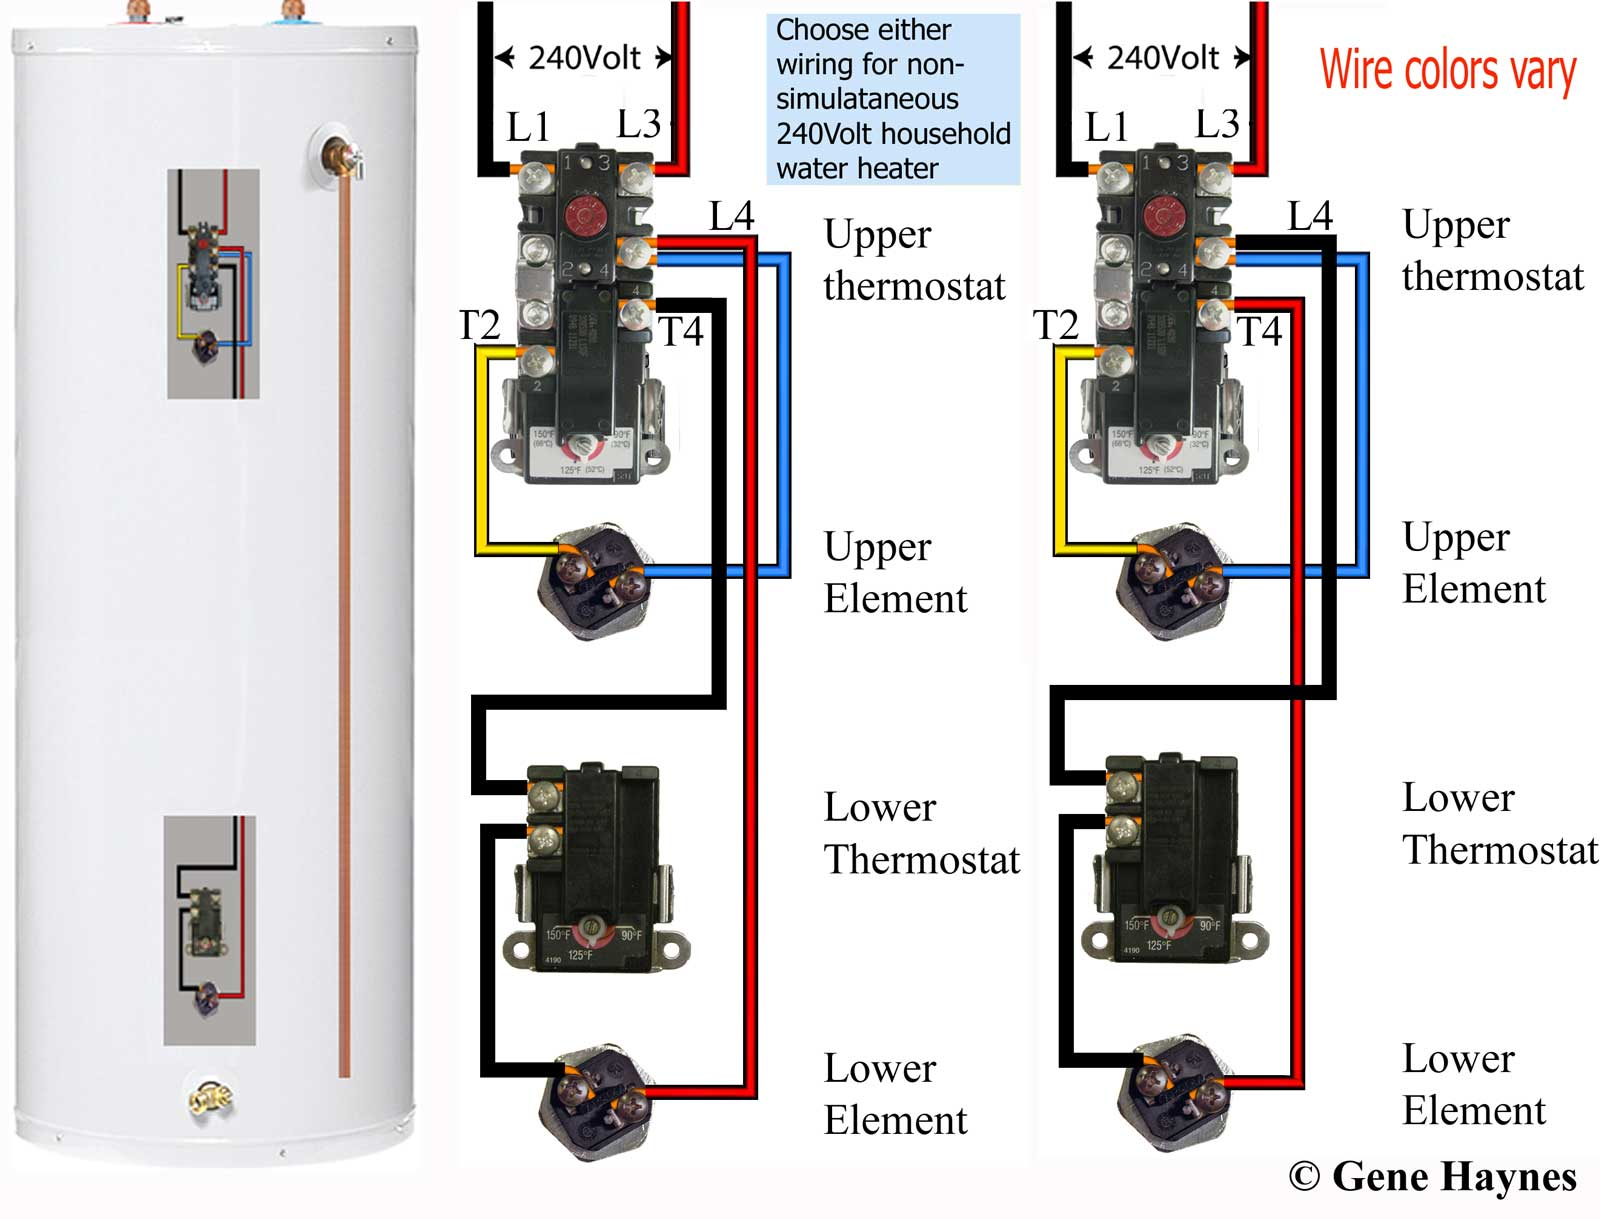 How to wire water heater thermostats see larger residential dual element water heater both elements are never on at same time unless tank is wired for other purpose see owners manual ccuart